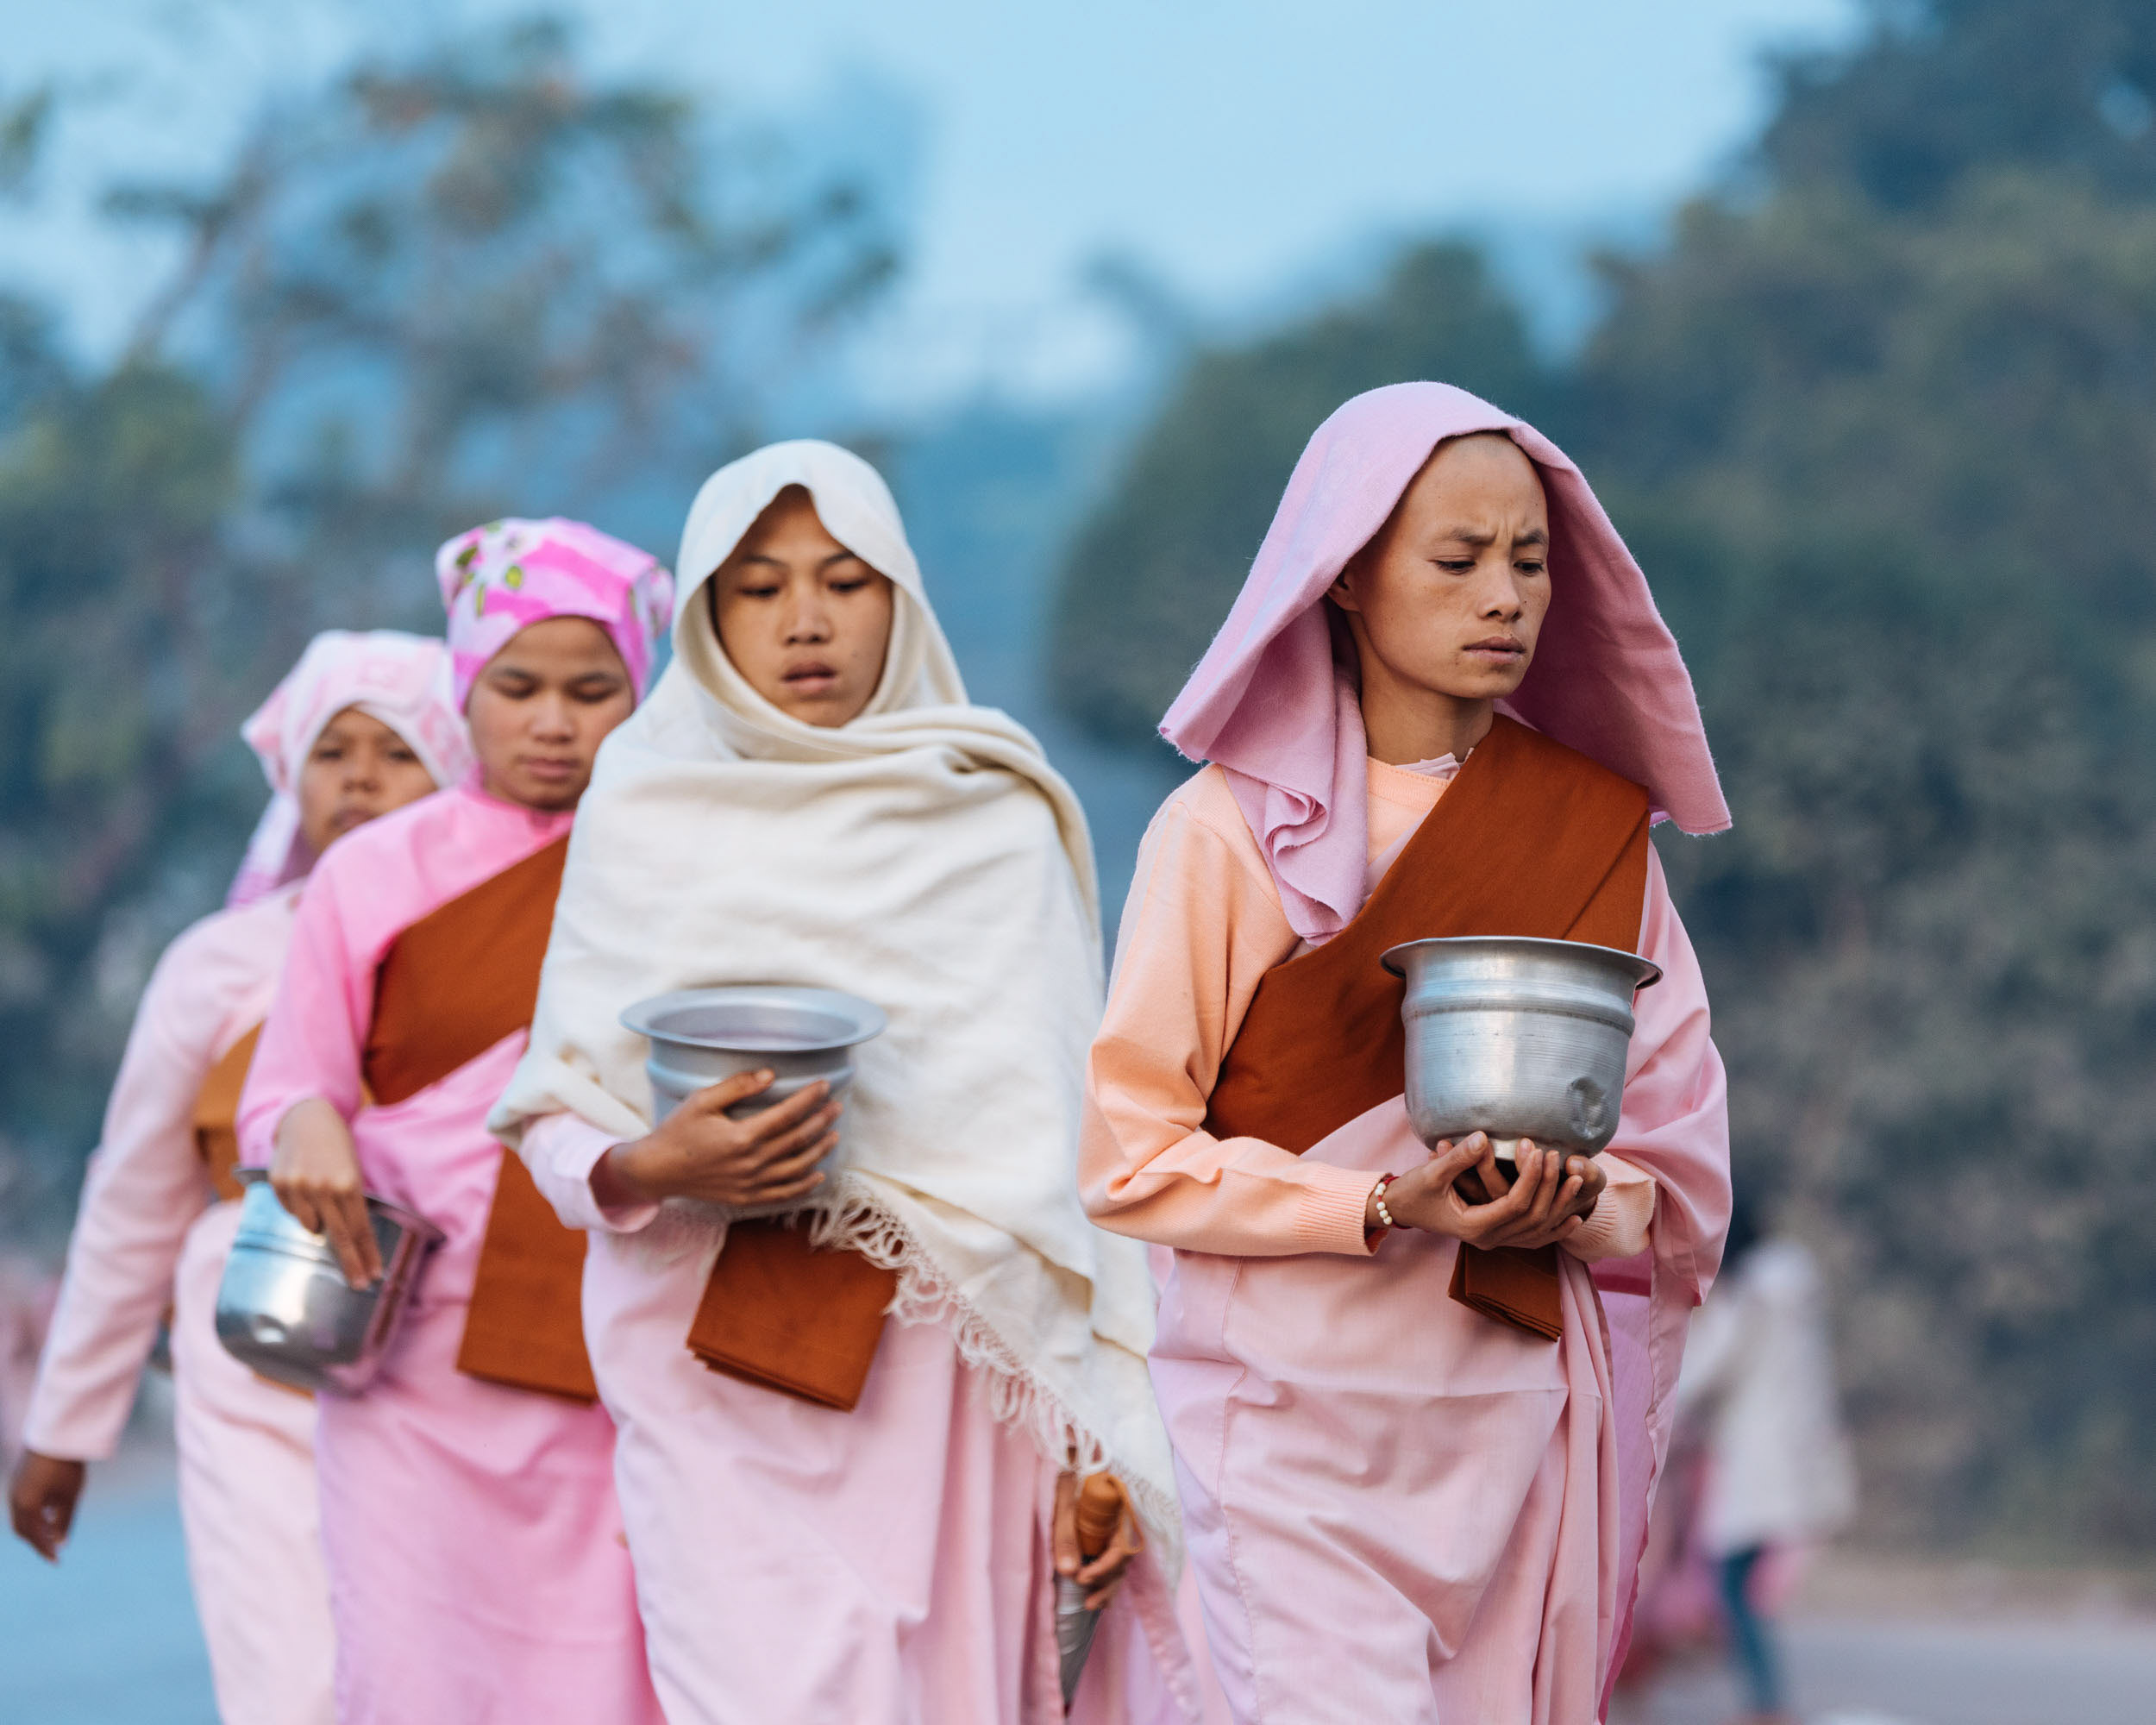 buddhist-nuns-alms-morning-dawn-collection-charity-hsipaw-shan-state-myanmar